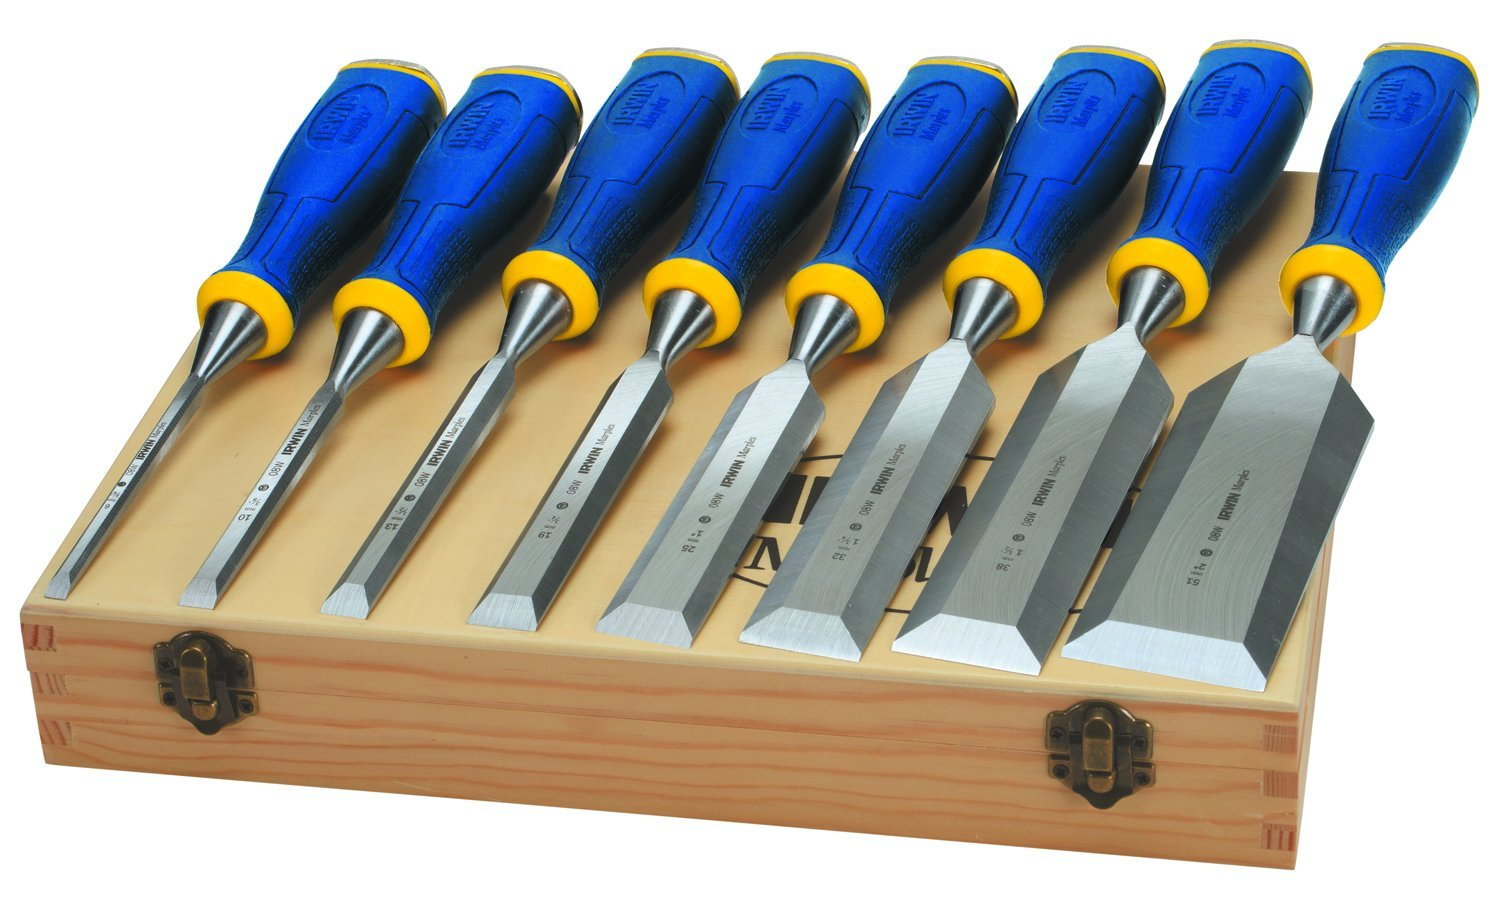 ProTouch Bevel Edge Chisel Set of 6 Plus 2 Chisels FREE by Marples Irwin